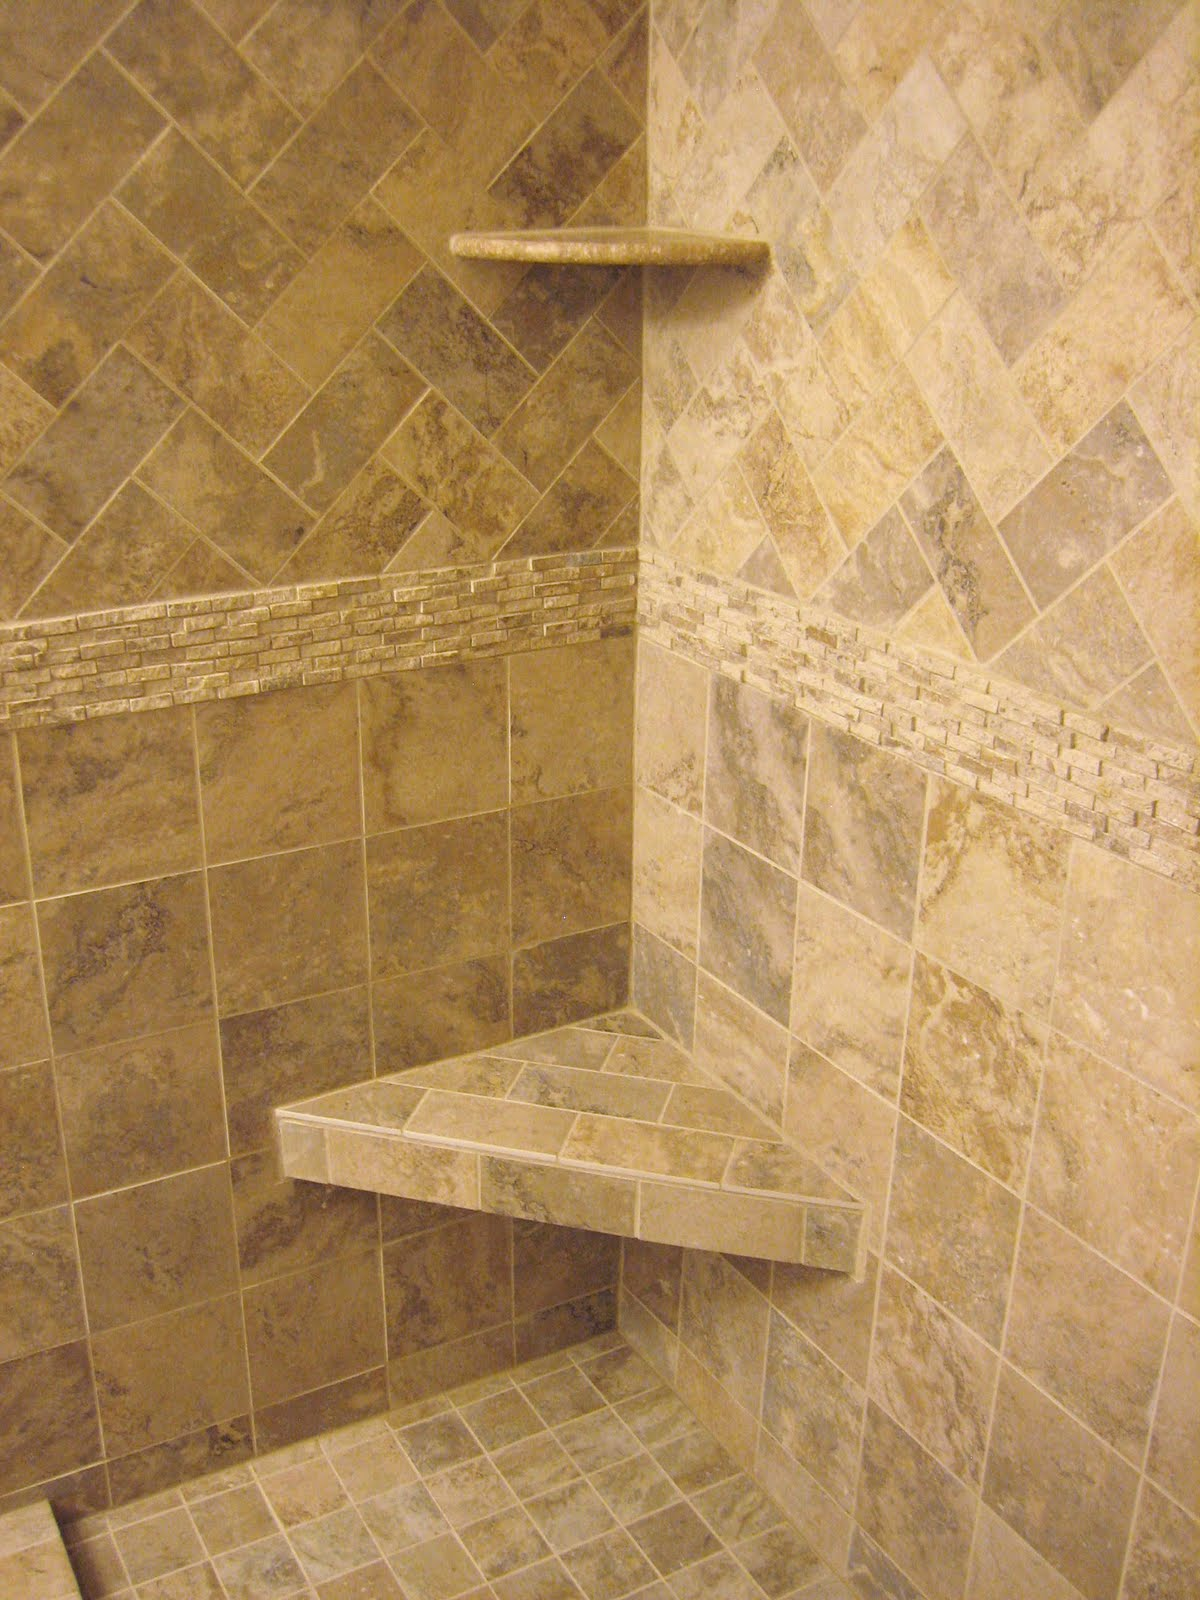 H winter showroom blog june 2010 Tile a shower